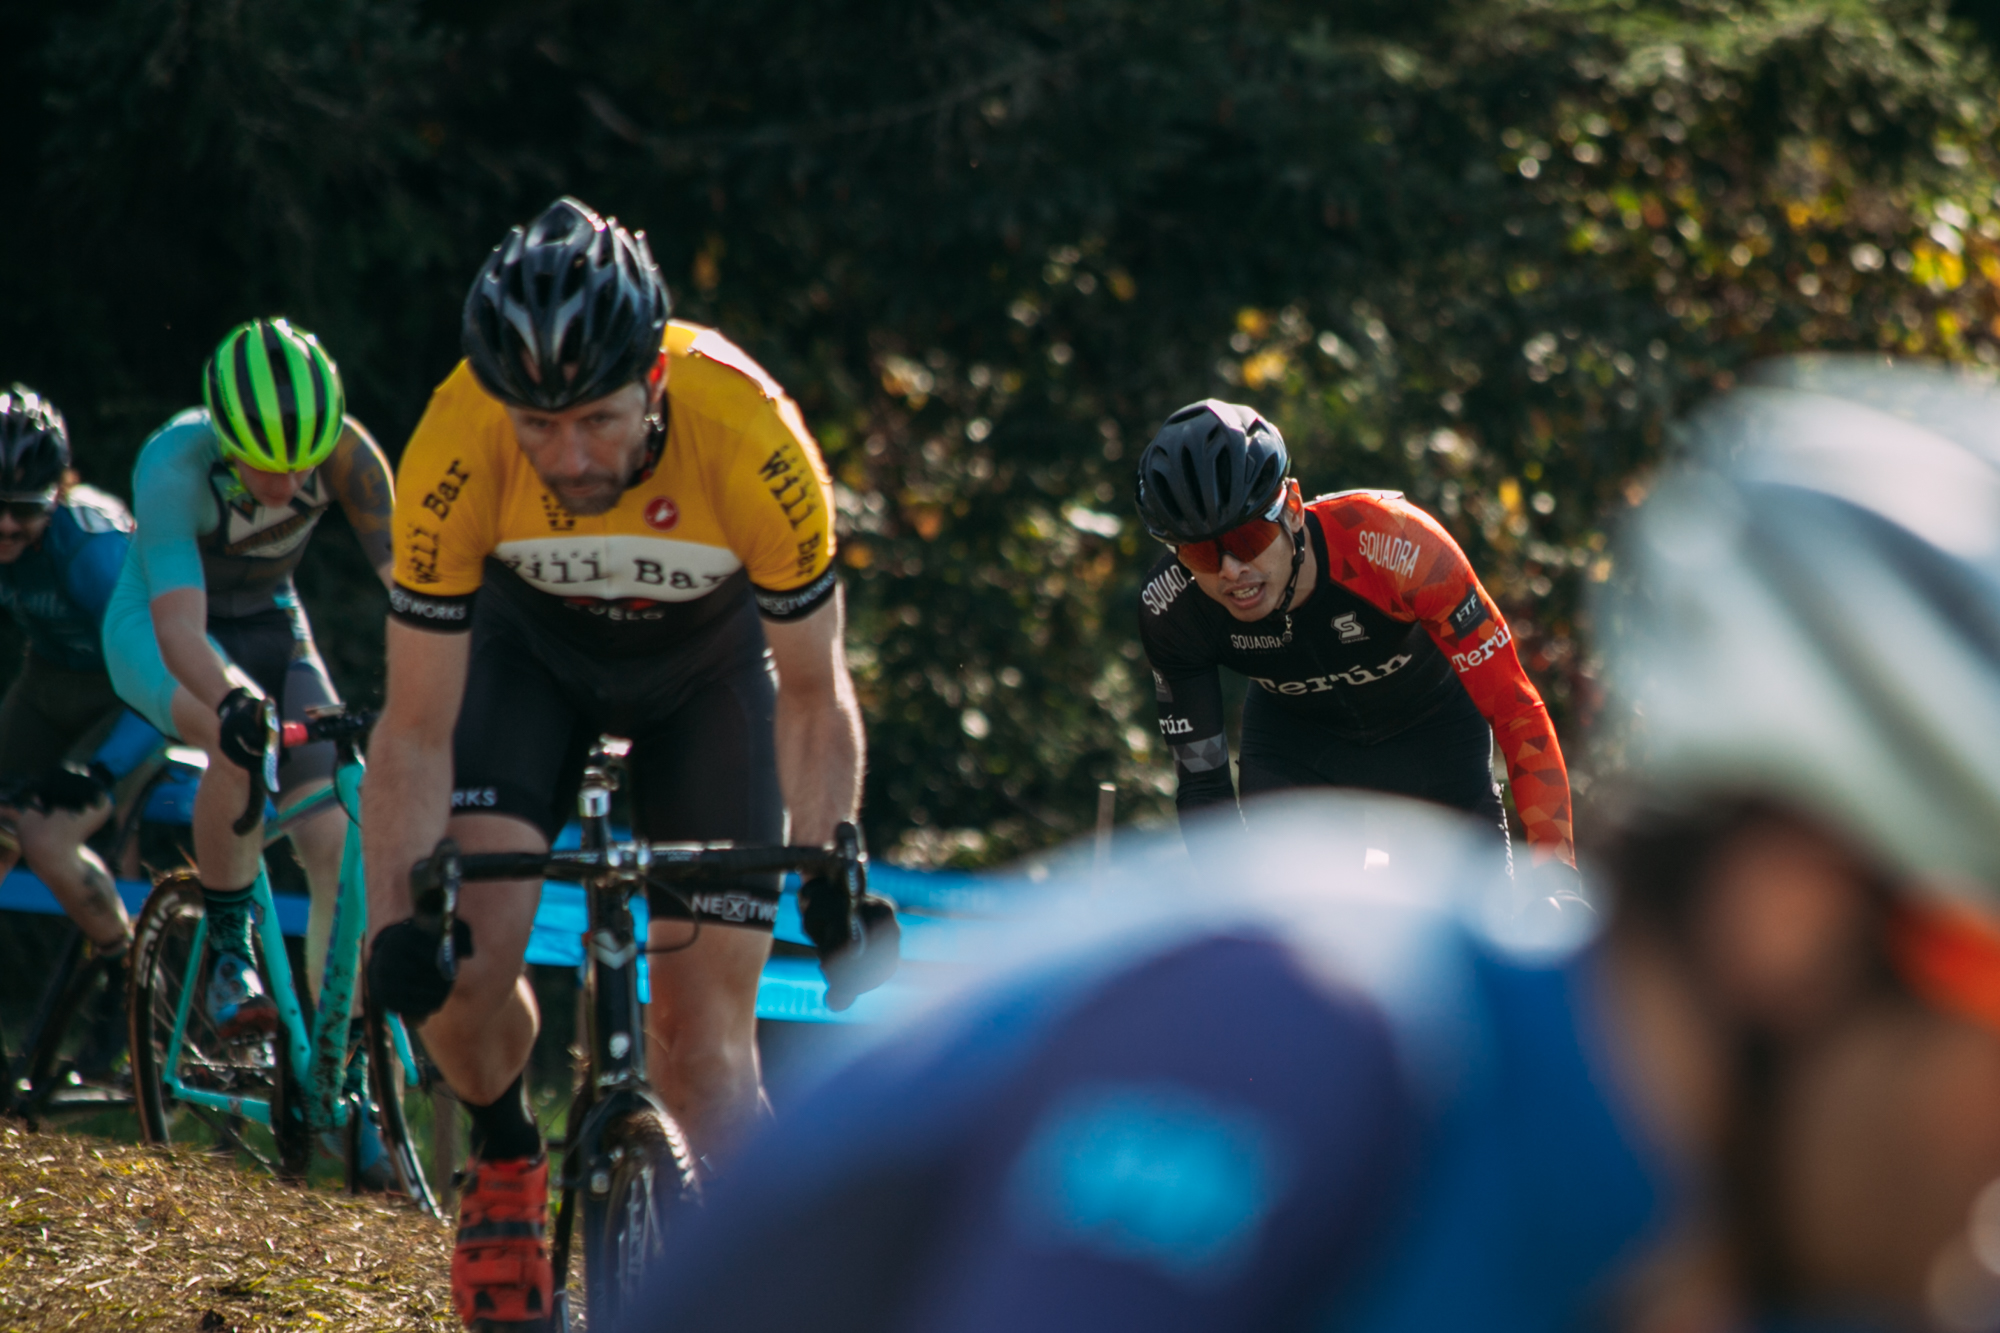 Cyclocross18_CCCX_RainierHS-86-mettlecycling.jpg